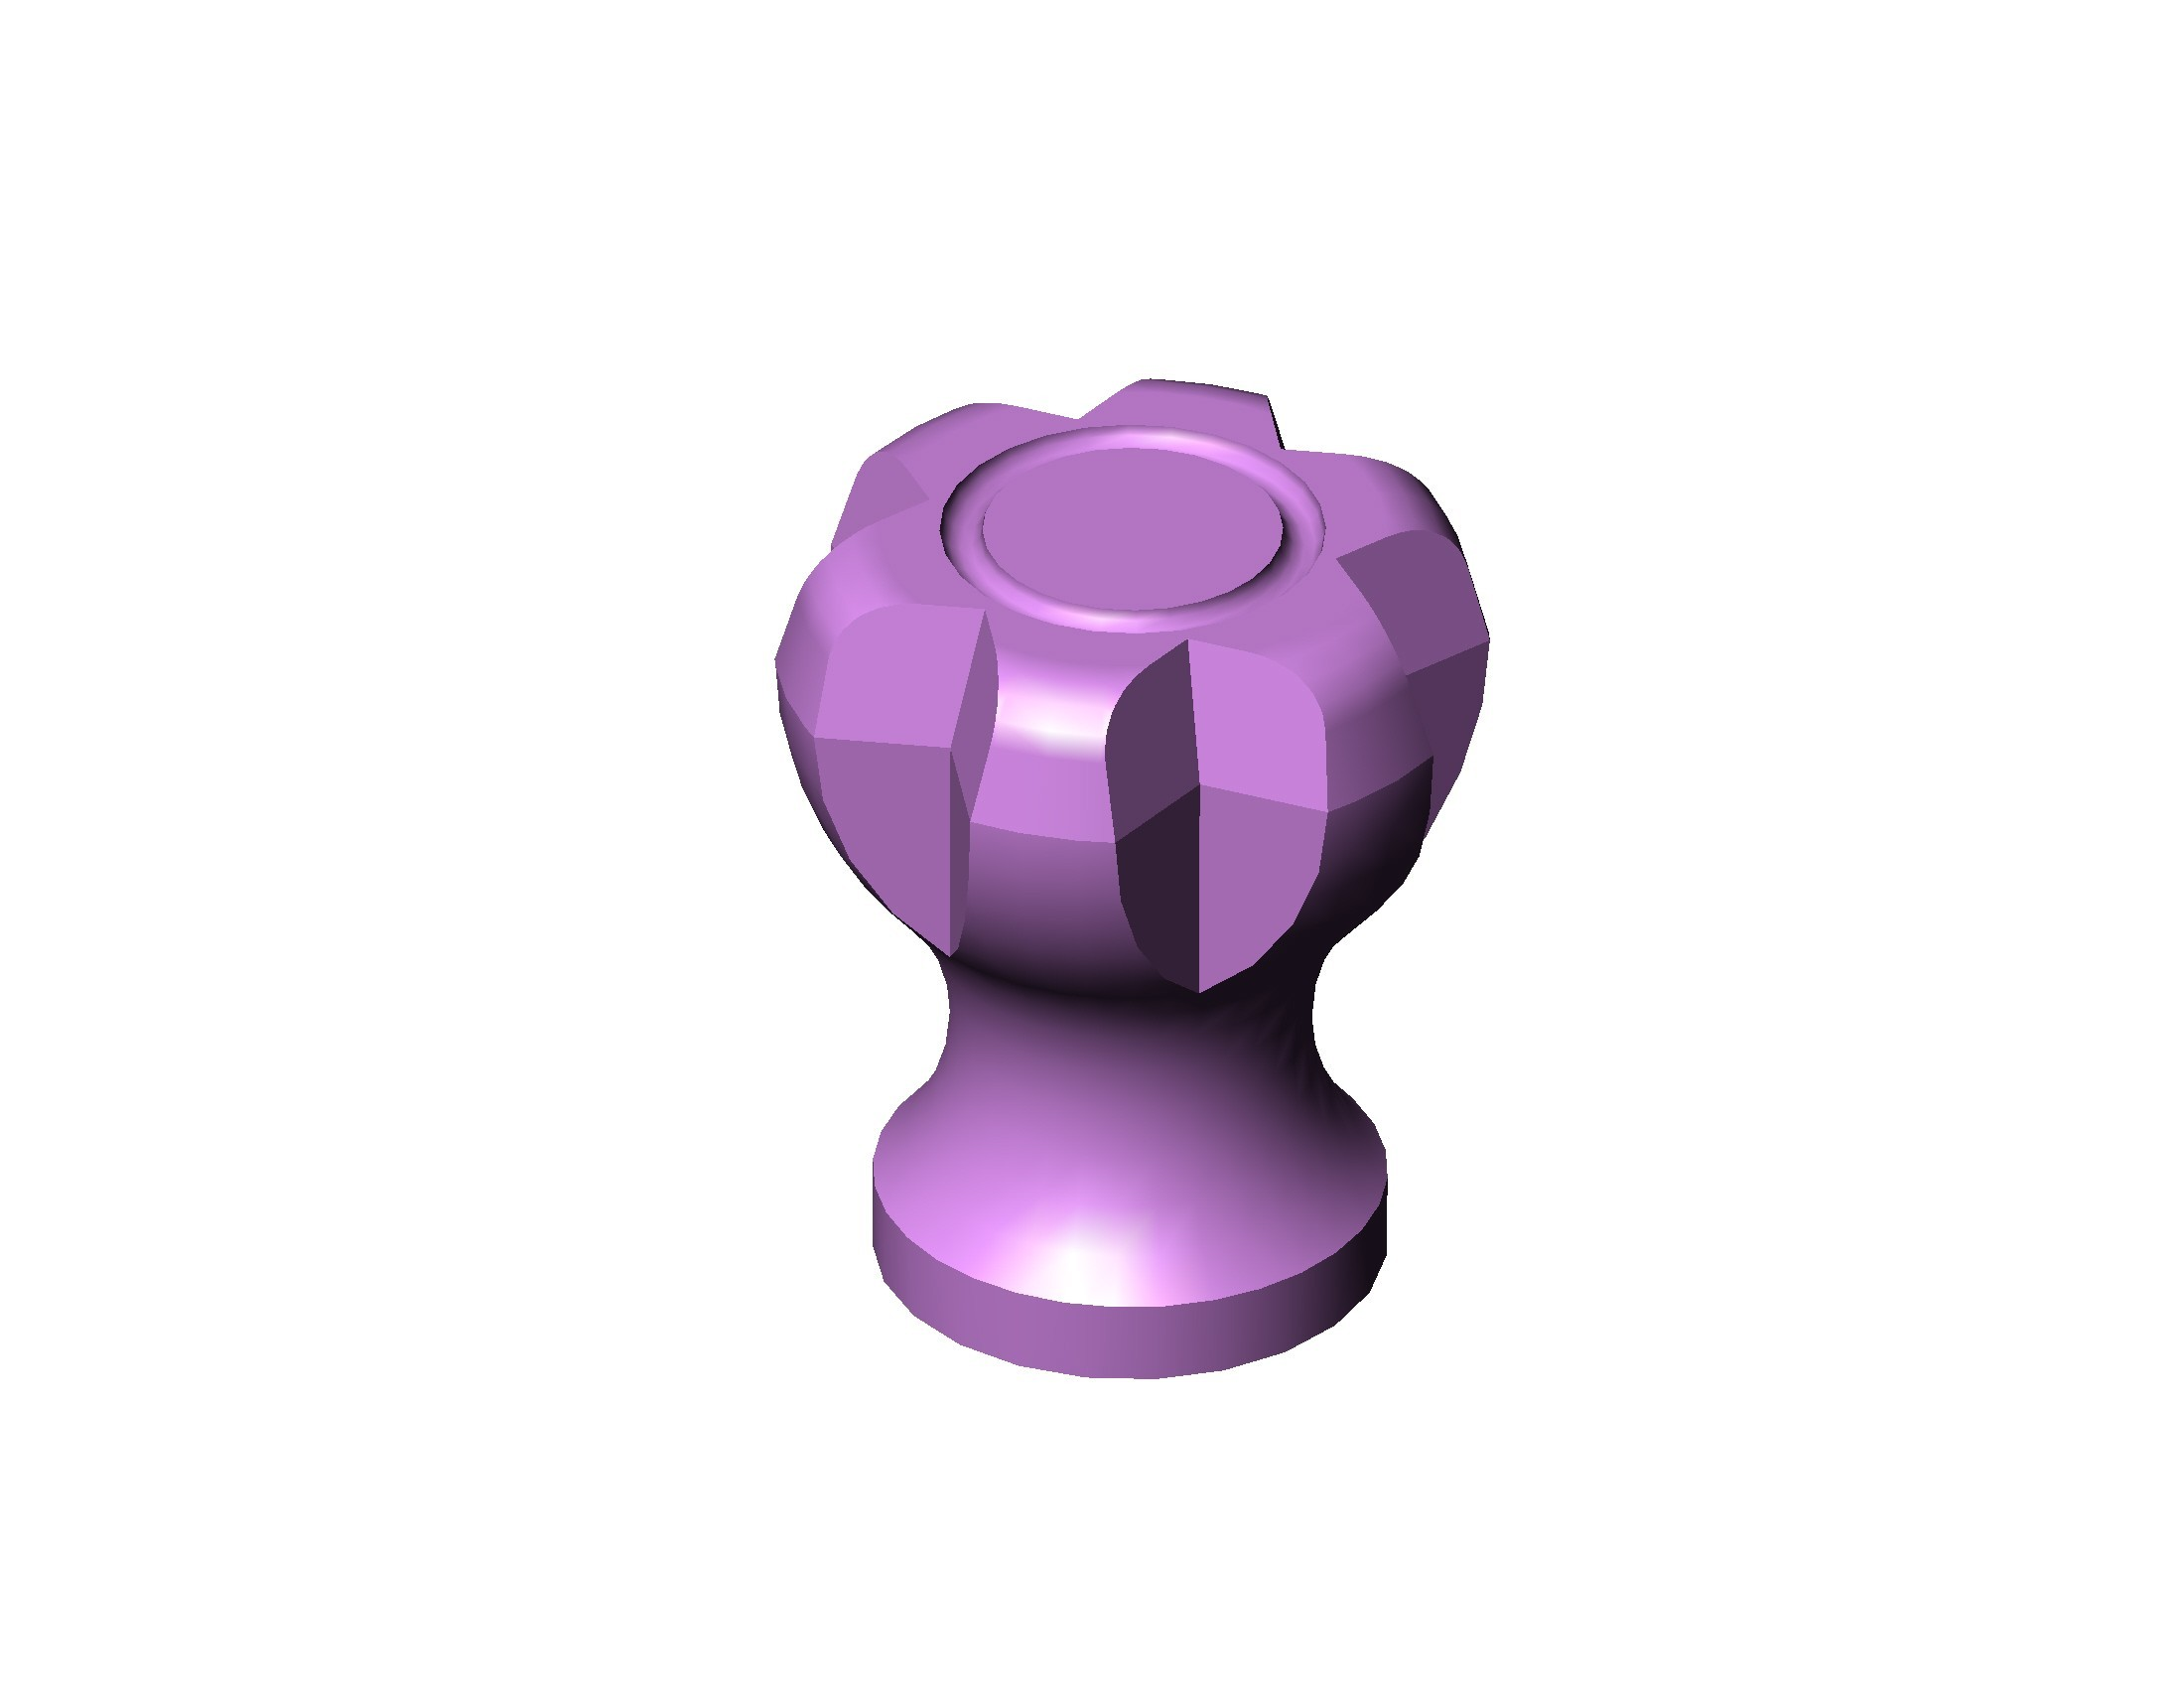 BOUTON PORTE M4 - D20 MM - 40 HAUT A.JPG Download STL file COMMODE BUTTON OFFICE DECO • Object to 3D print, Laurence